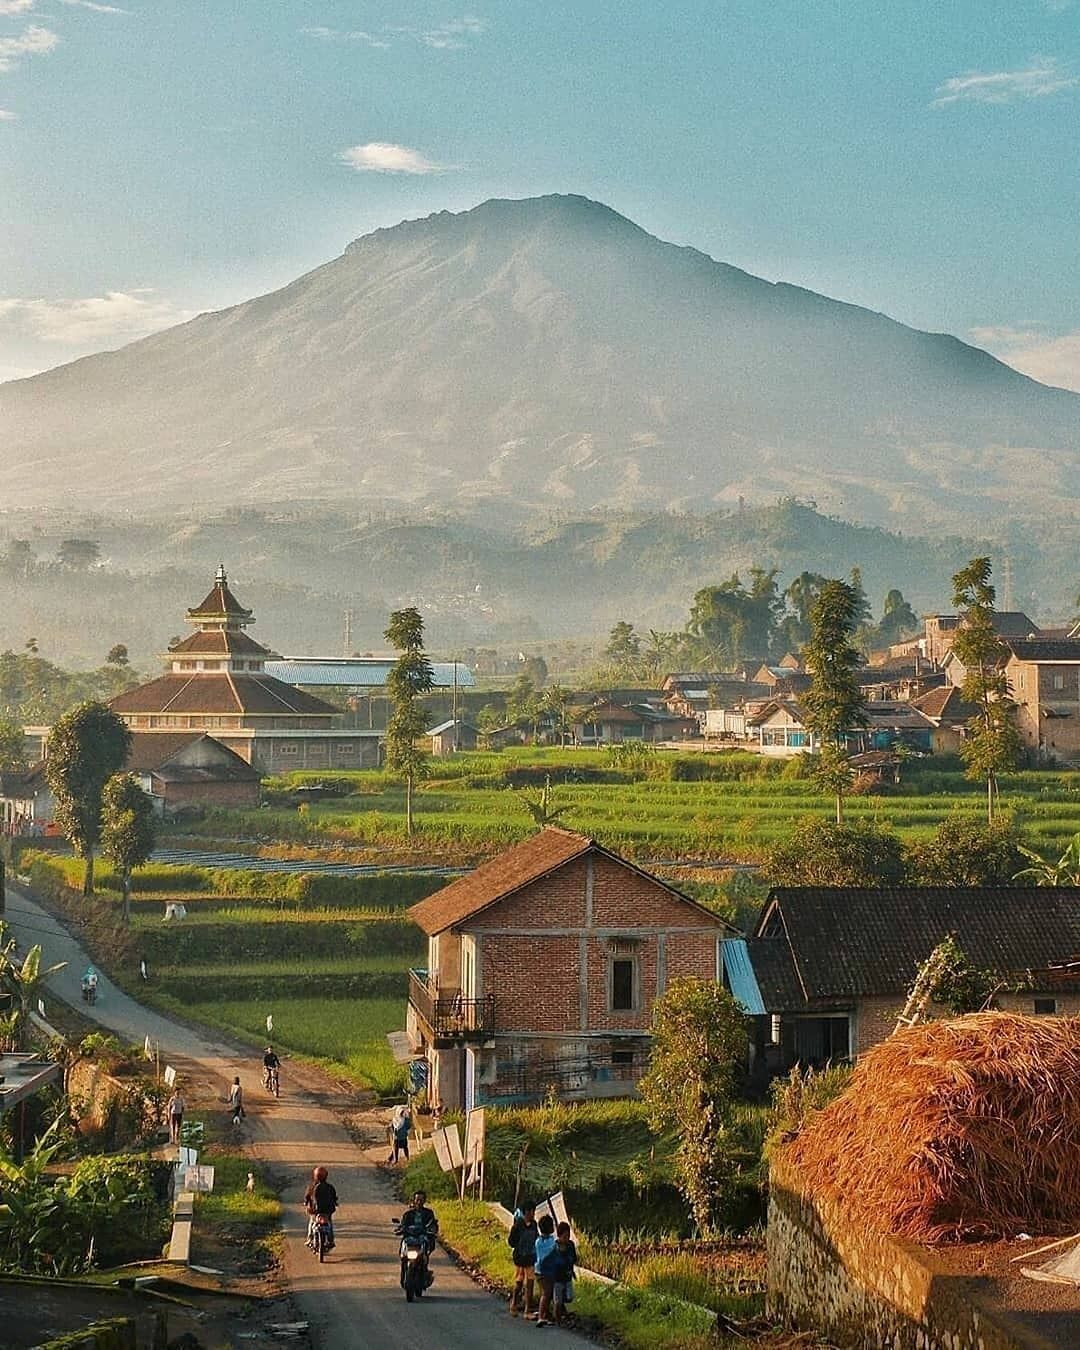 Indonesia Tourism Destination Tag Your Friends If You Really Want To Go There With Them Location Temanggung Tag Yo Di 2021 Fotografi Alam Pemandangan Pedesaan